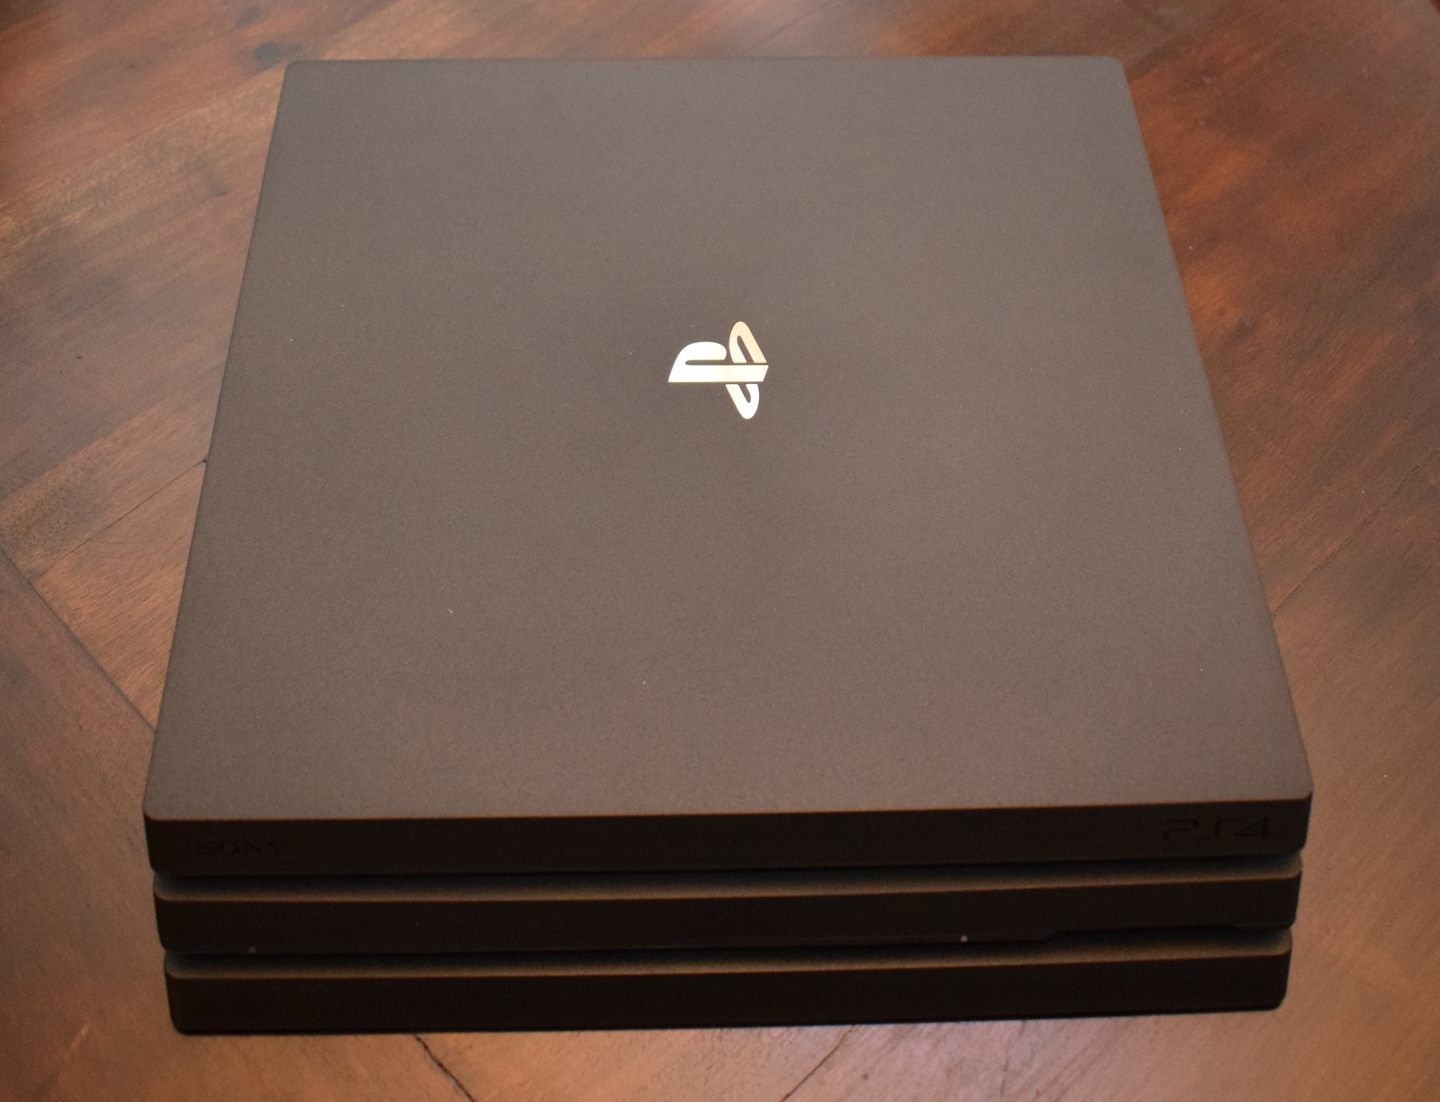 PS4 Pro Unboxed Top Front